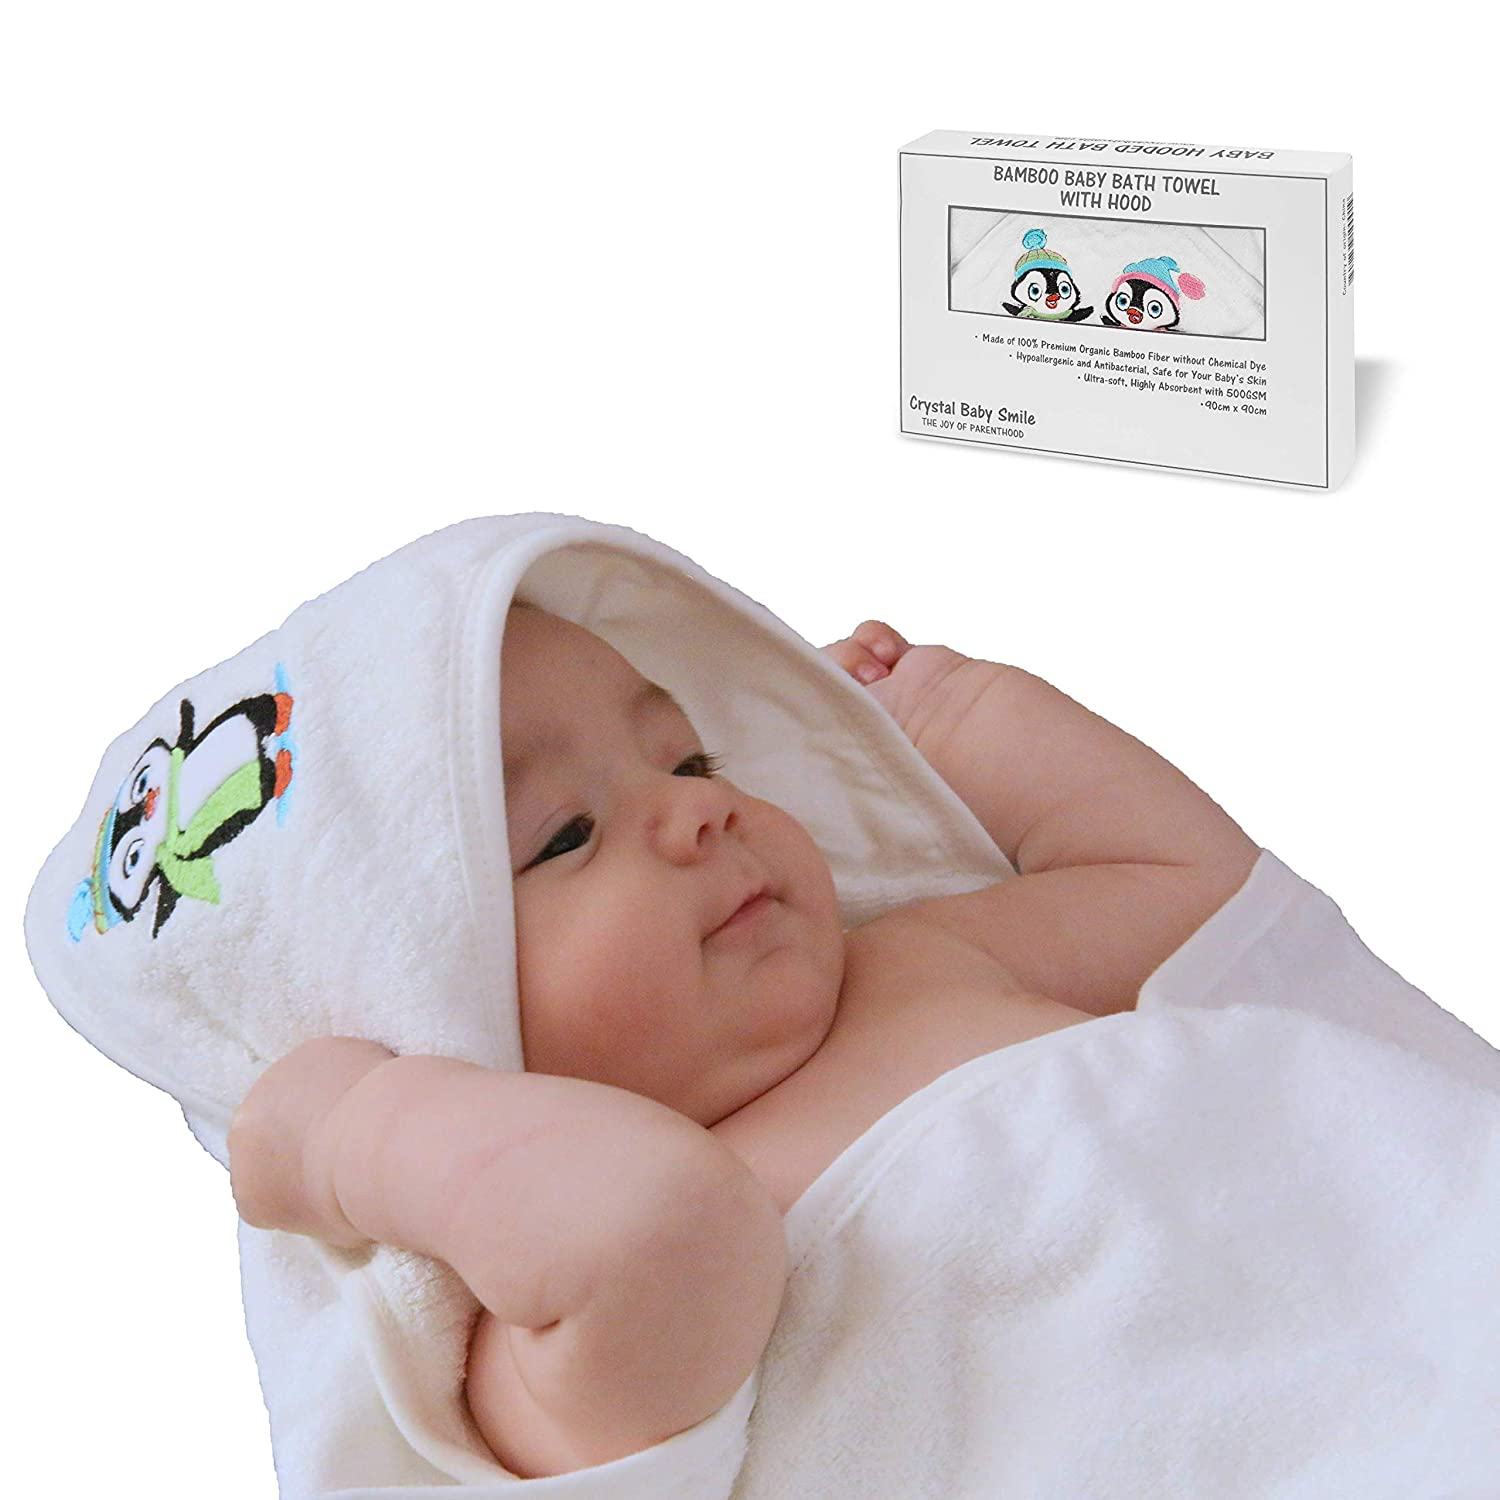 Amazon com crystal baby smile extra large bamboo hooded bath towel for newborn baby infant or toddler ultra soft and highly absorbent perfect baby